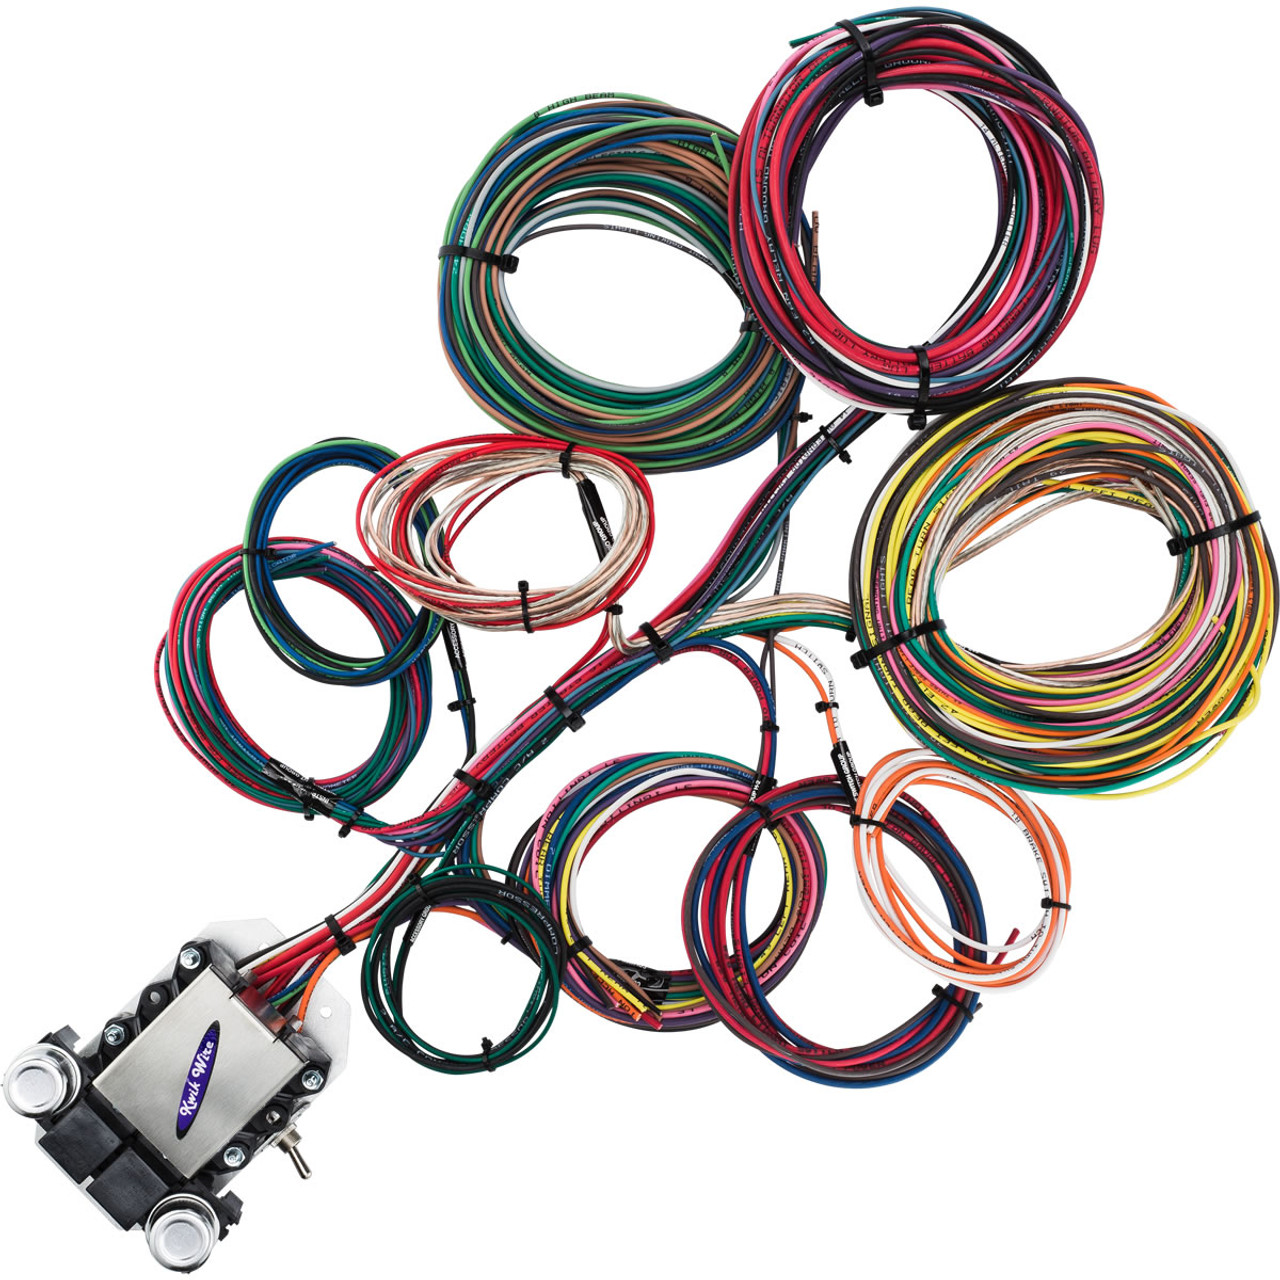 Ford Wire Harness Wiring Diagrams 5th Wheel 14 Circuit Kwikwire Com Electrify Your Ride